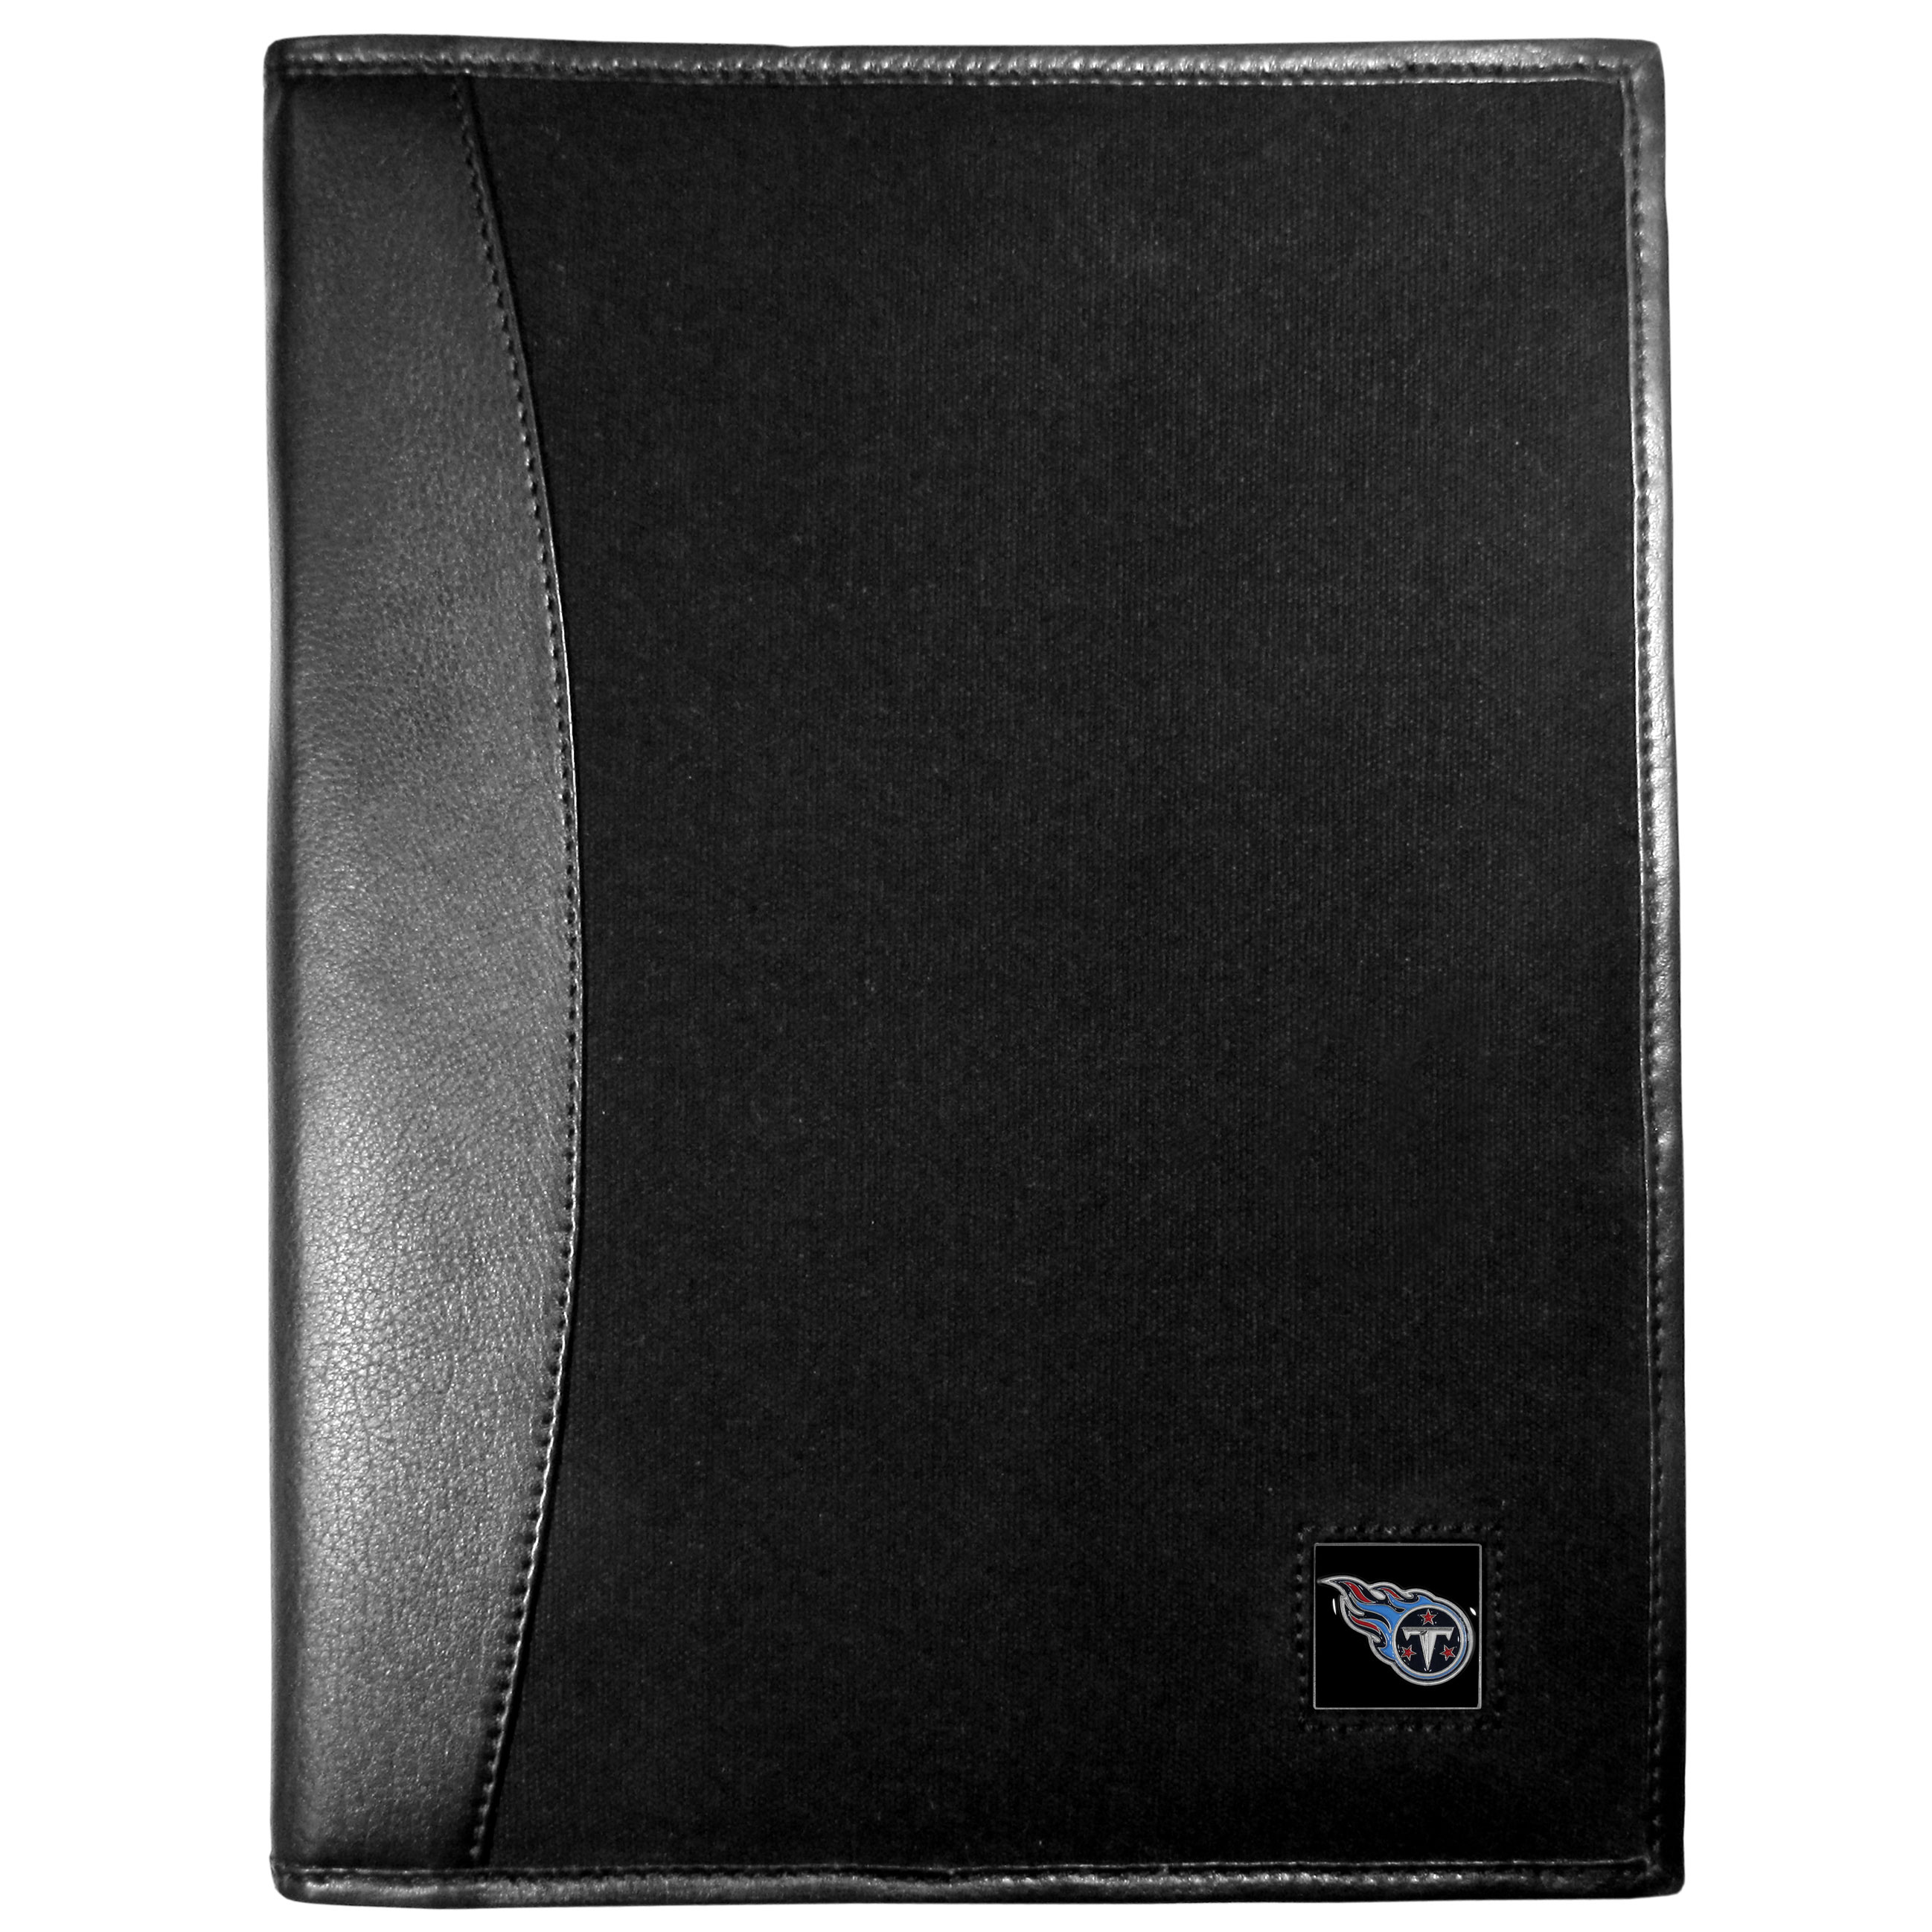 Tennessee Titans Leather and Canvas Padfolio - Our leather and canvas padfolio perfectly blends form and function. The attractive portfolio is bound in fine grain leather with an attractive canvas finish and the interior is a soft nylon. This high quality business accessory also features a fully cast metal Tennessee Titans emblem that is subtly set in the corner of the organizer. It is packed with features like 6 card slots for badges, business cards, hotel keys or credit cards and ID with a large pocket for loose papers and a writing tablet slot making it a must-have for the professional on the go.